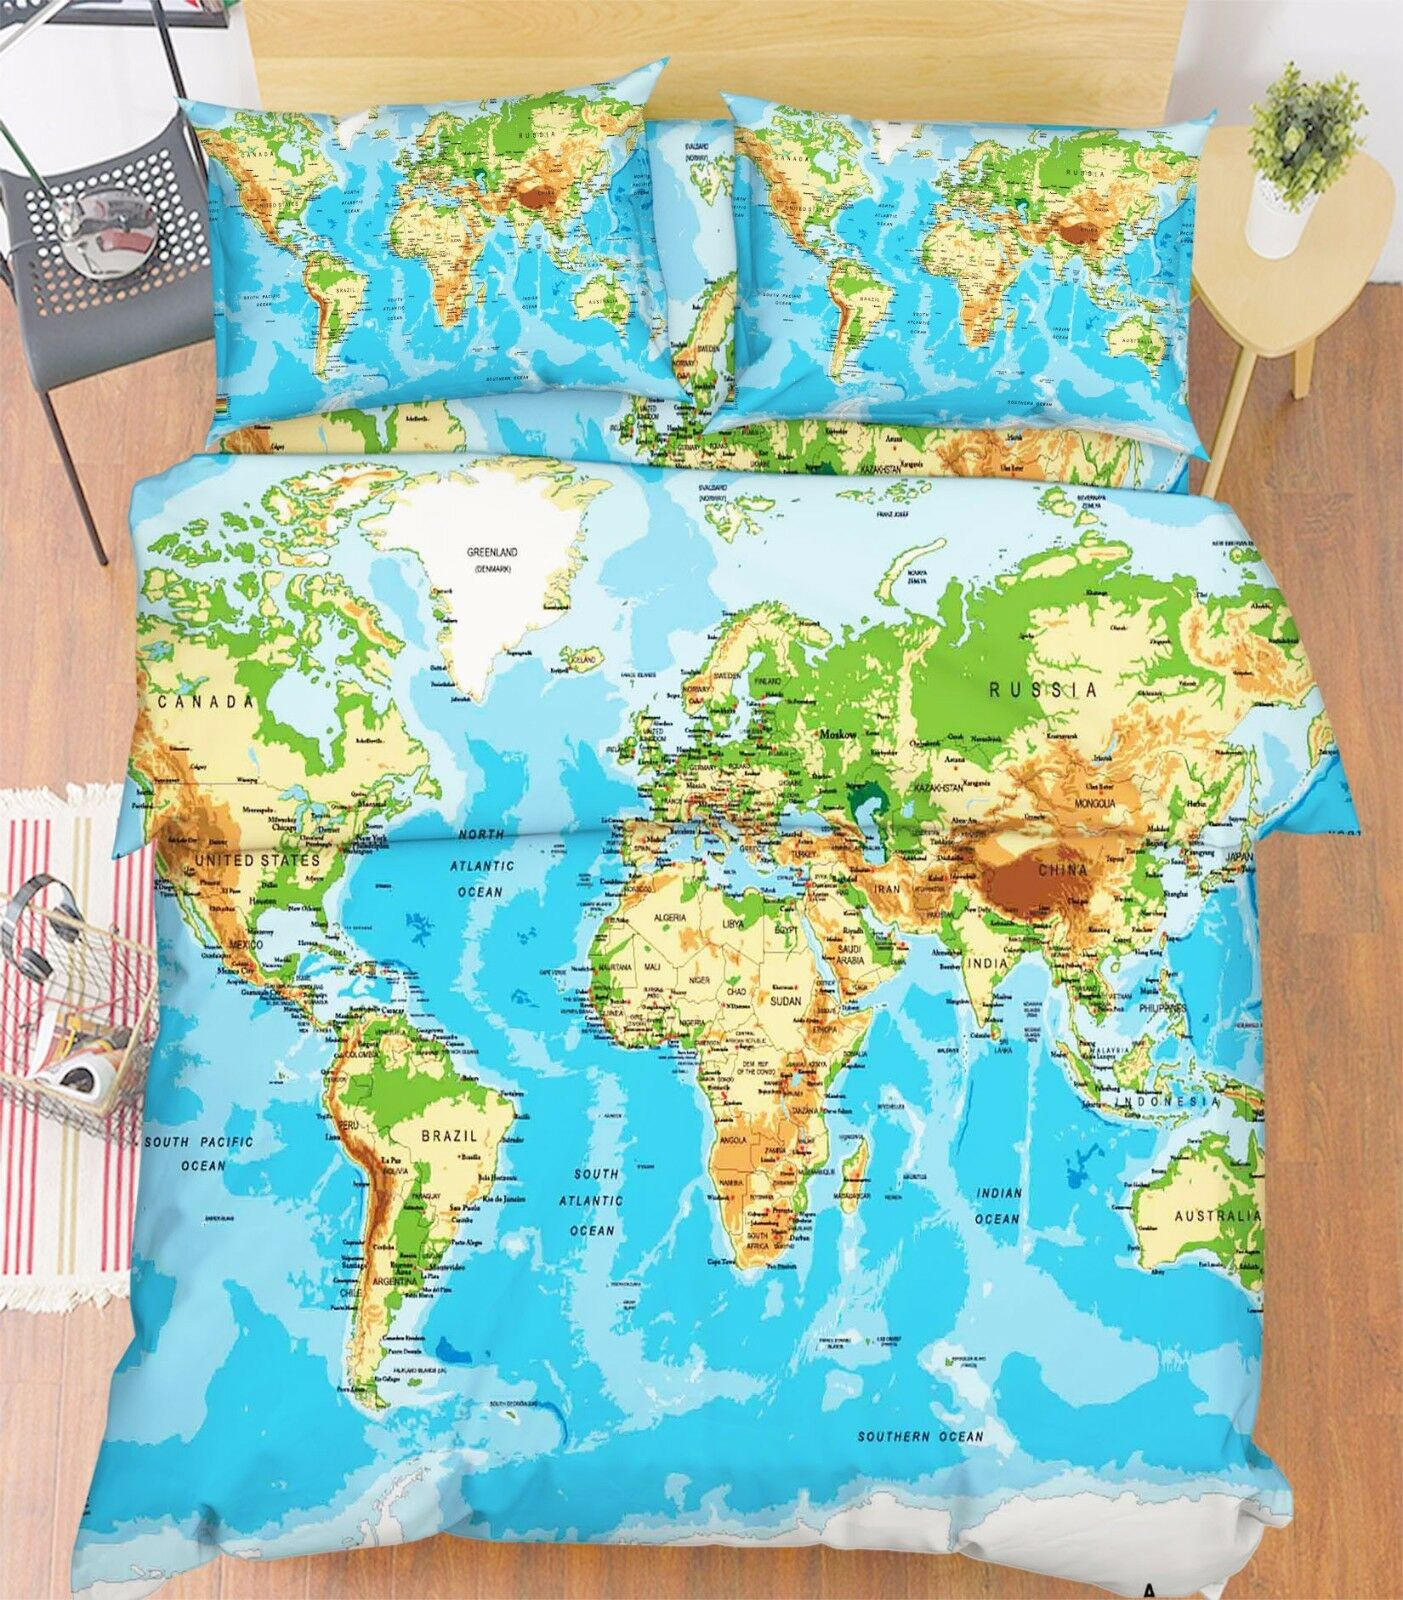 3D Map Sea Bule 786 Bed Pillowcases Quilt Duvet Cover Set Single Queen UK Kyra